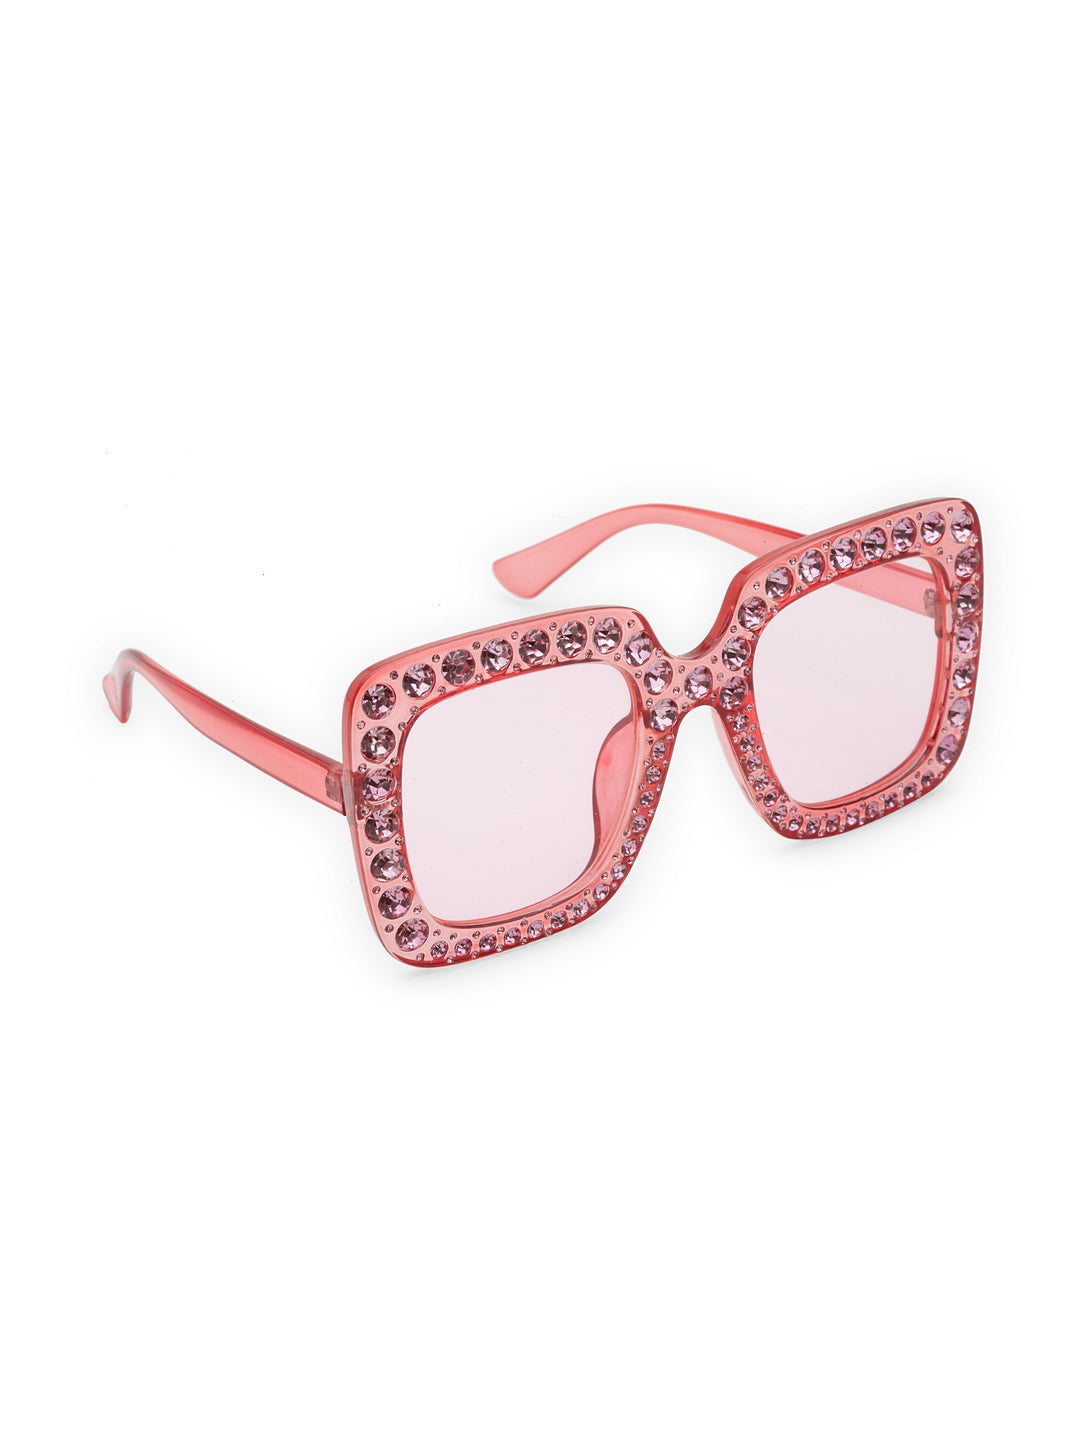 Avant-Garde Paris Women Oversized Square Diamond Sunglasses